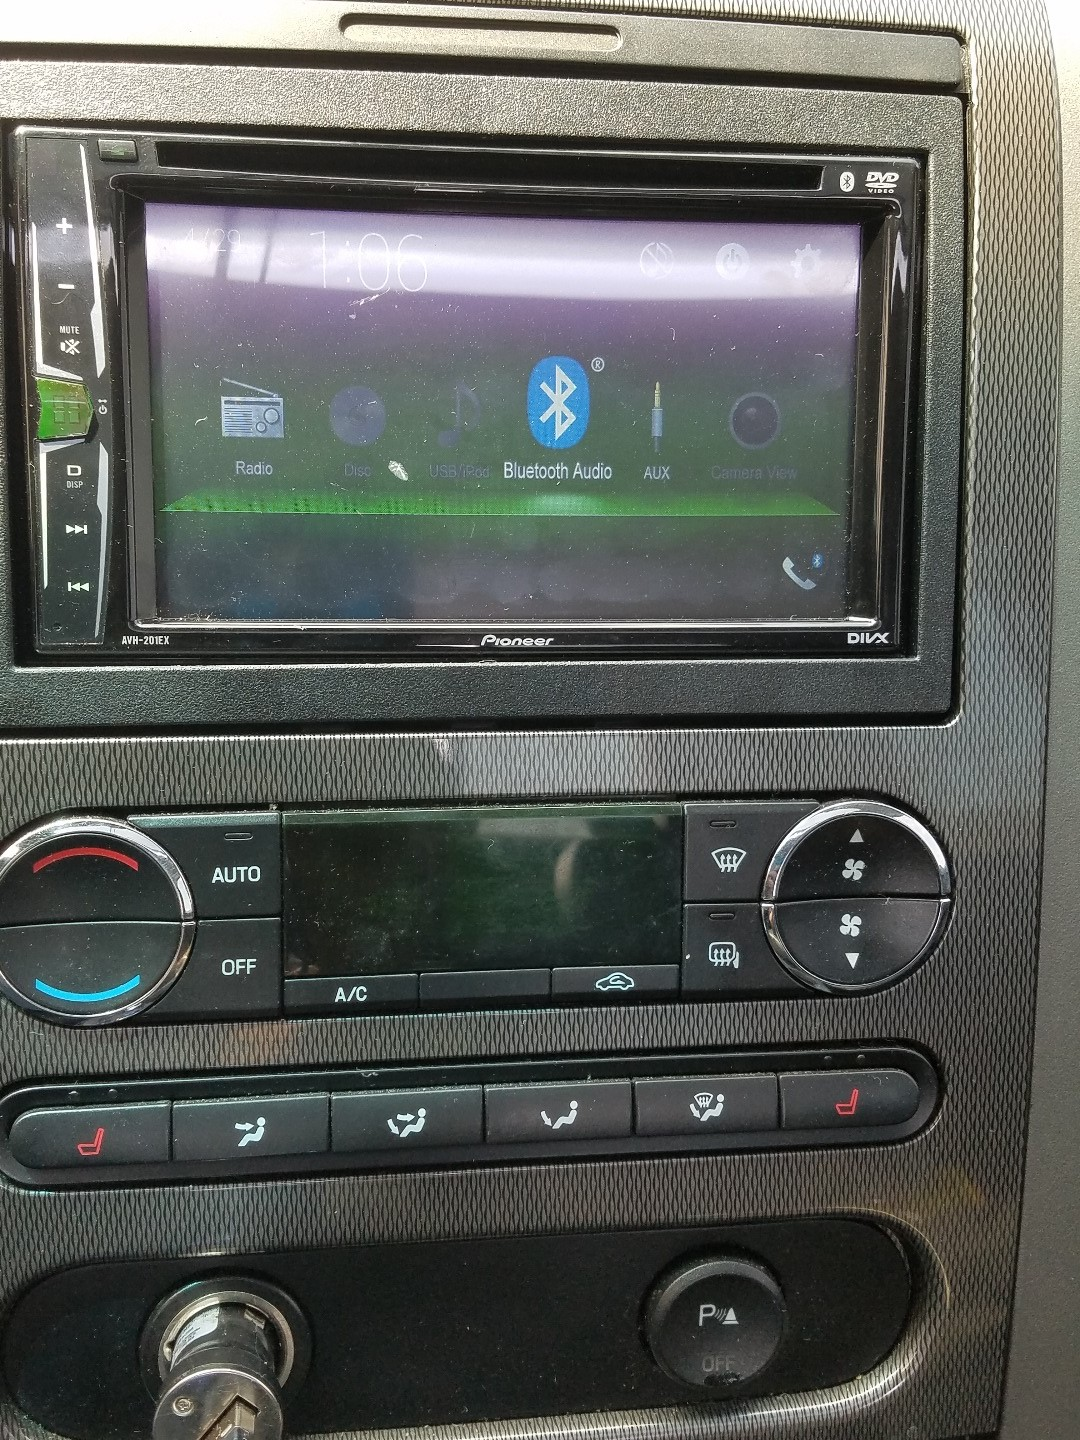 Pioneer AVH-201EX DVD receiver at Crutchfield